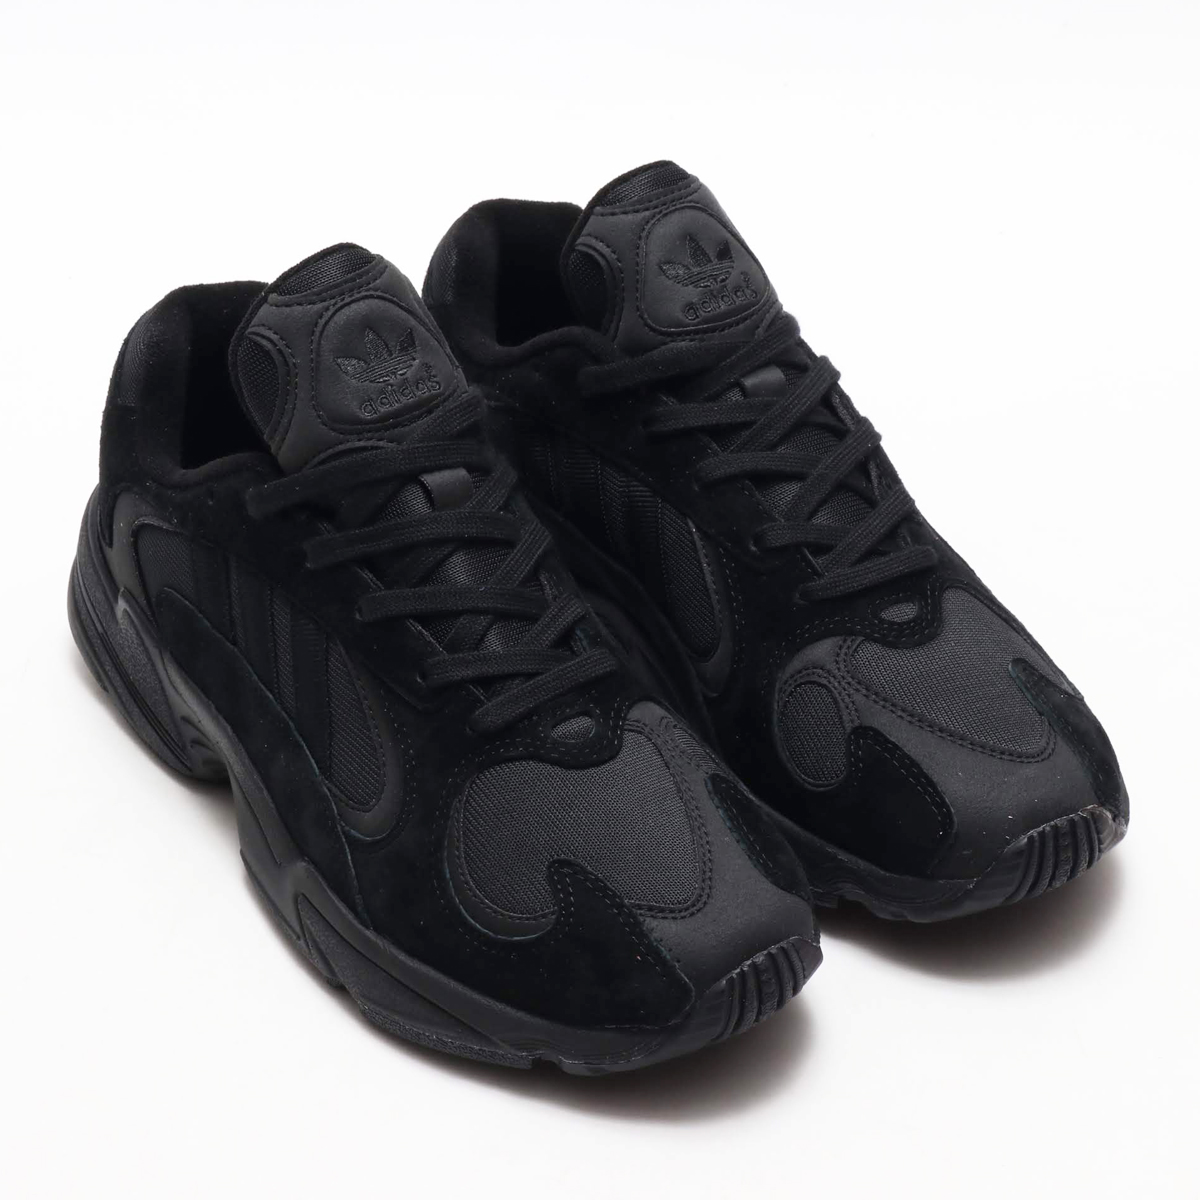 273cab22bf9b adidas Originals YUNG-1 (Adidas originals young people 1) CORE BLACK CORE  BLACK CARBON 18FW-I